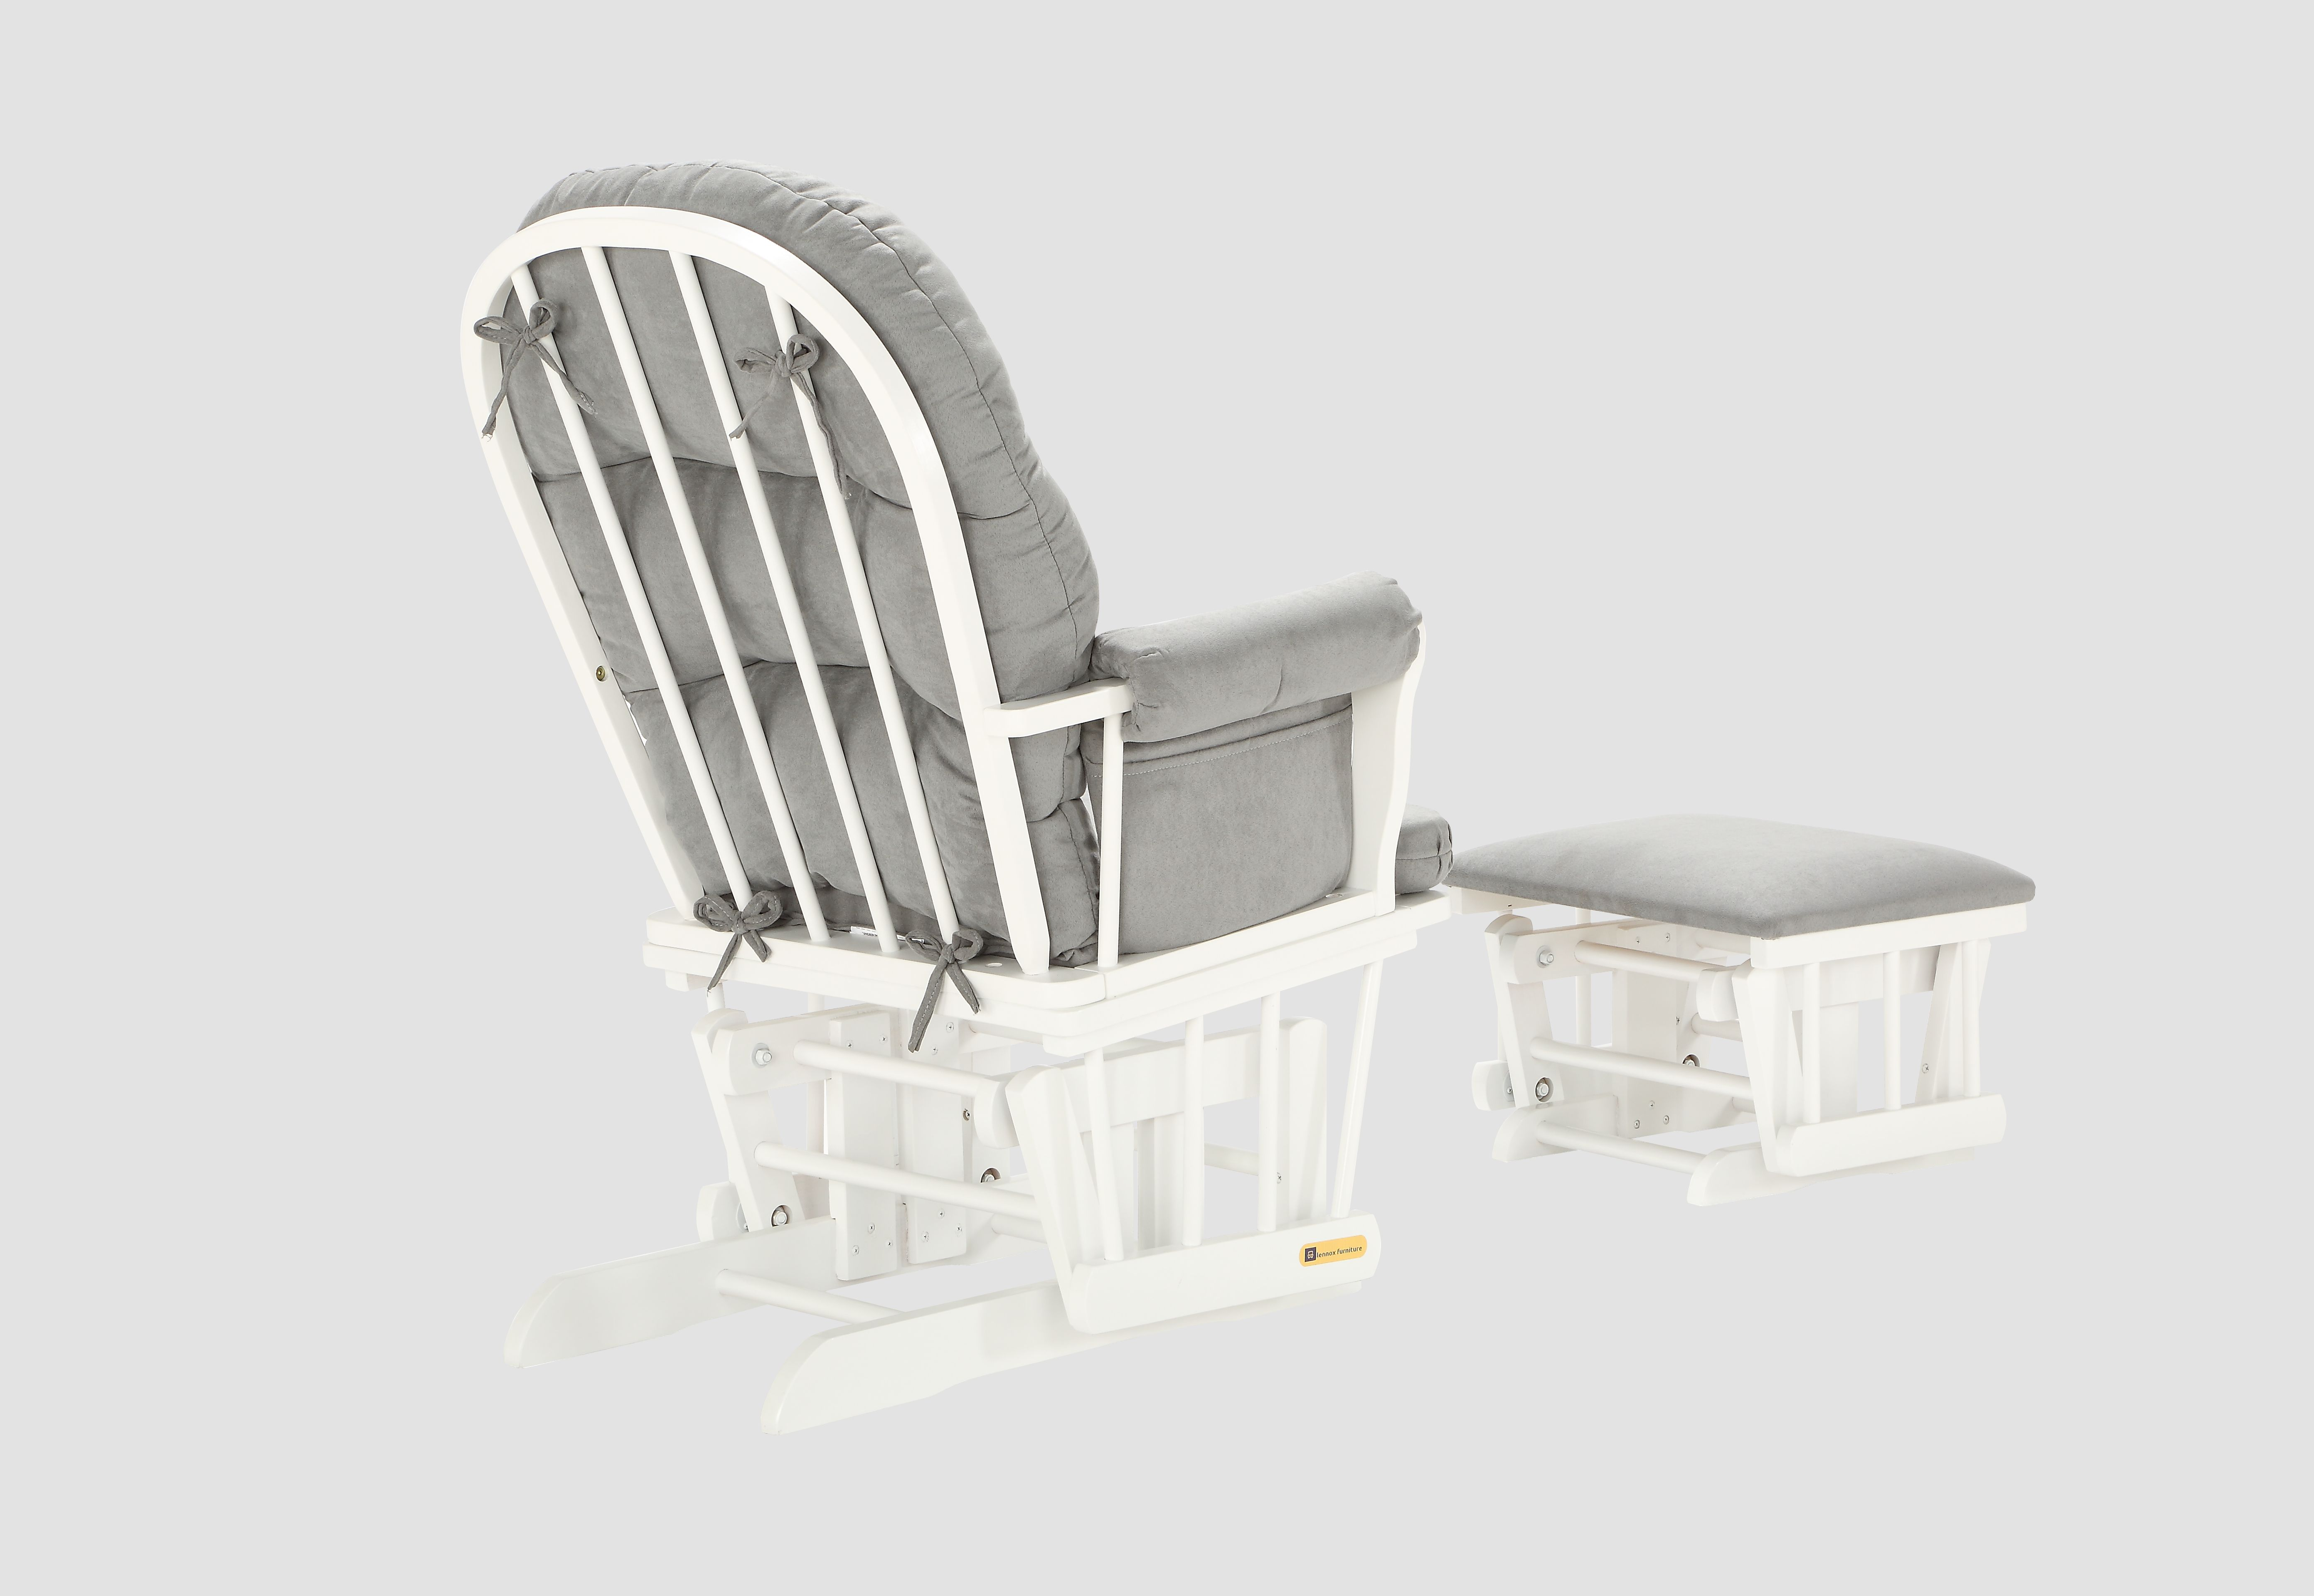 Swell Glider Chair And Ottoman Combo White Grey 7082Cb 15 1139 Cjindustries Chair Design For Home Cjindustriesco